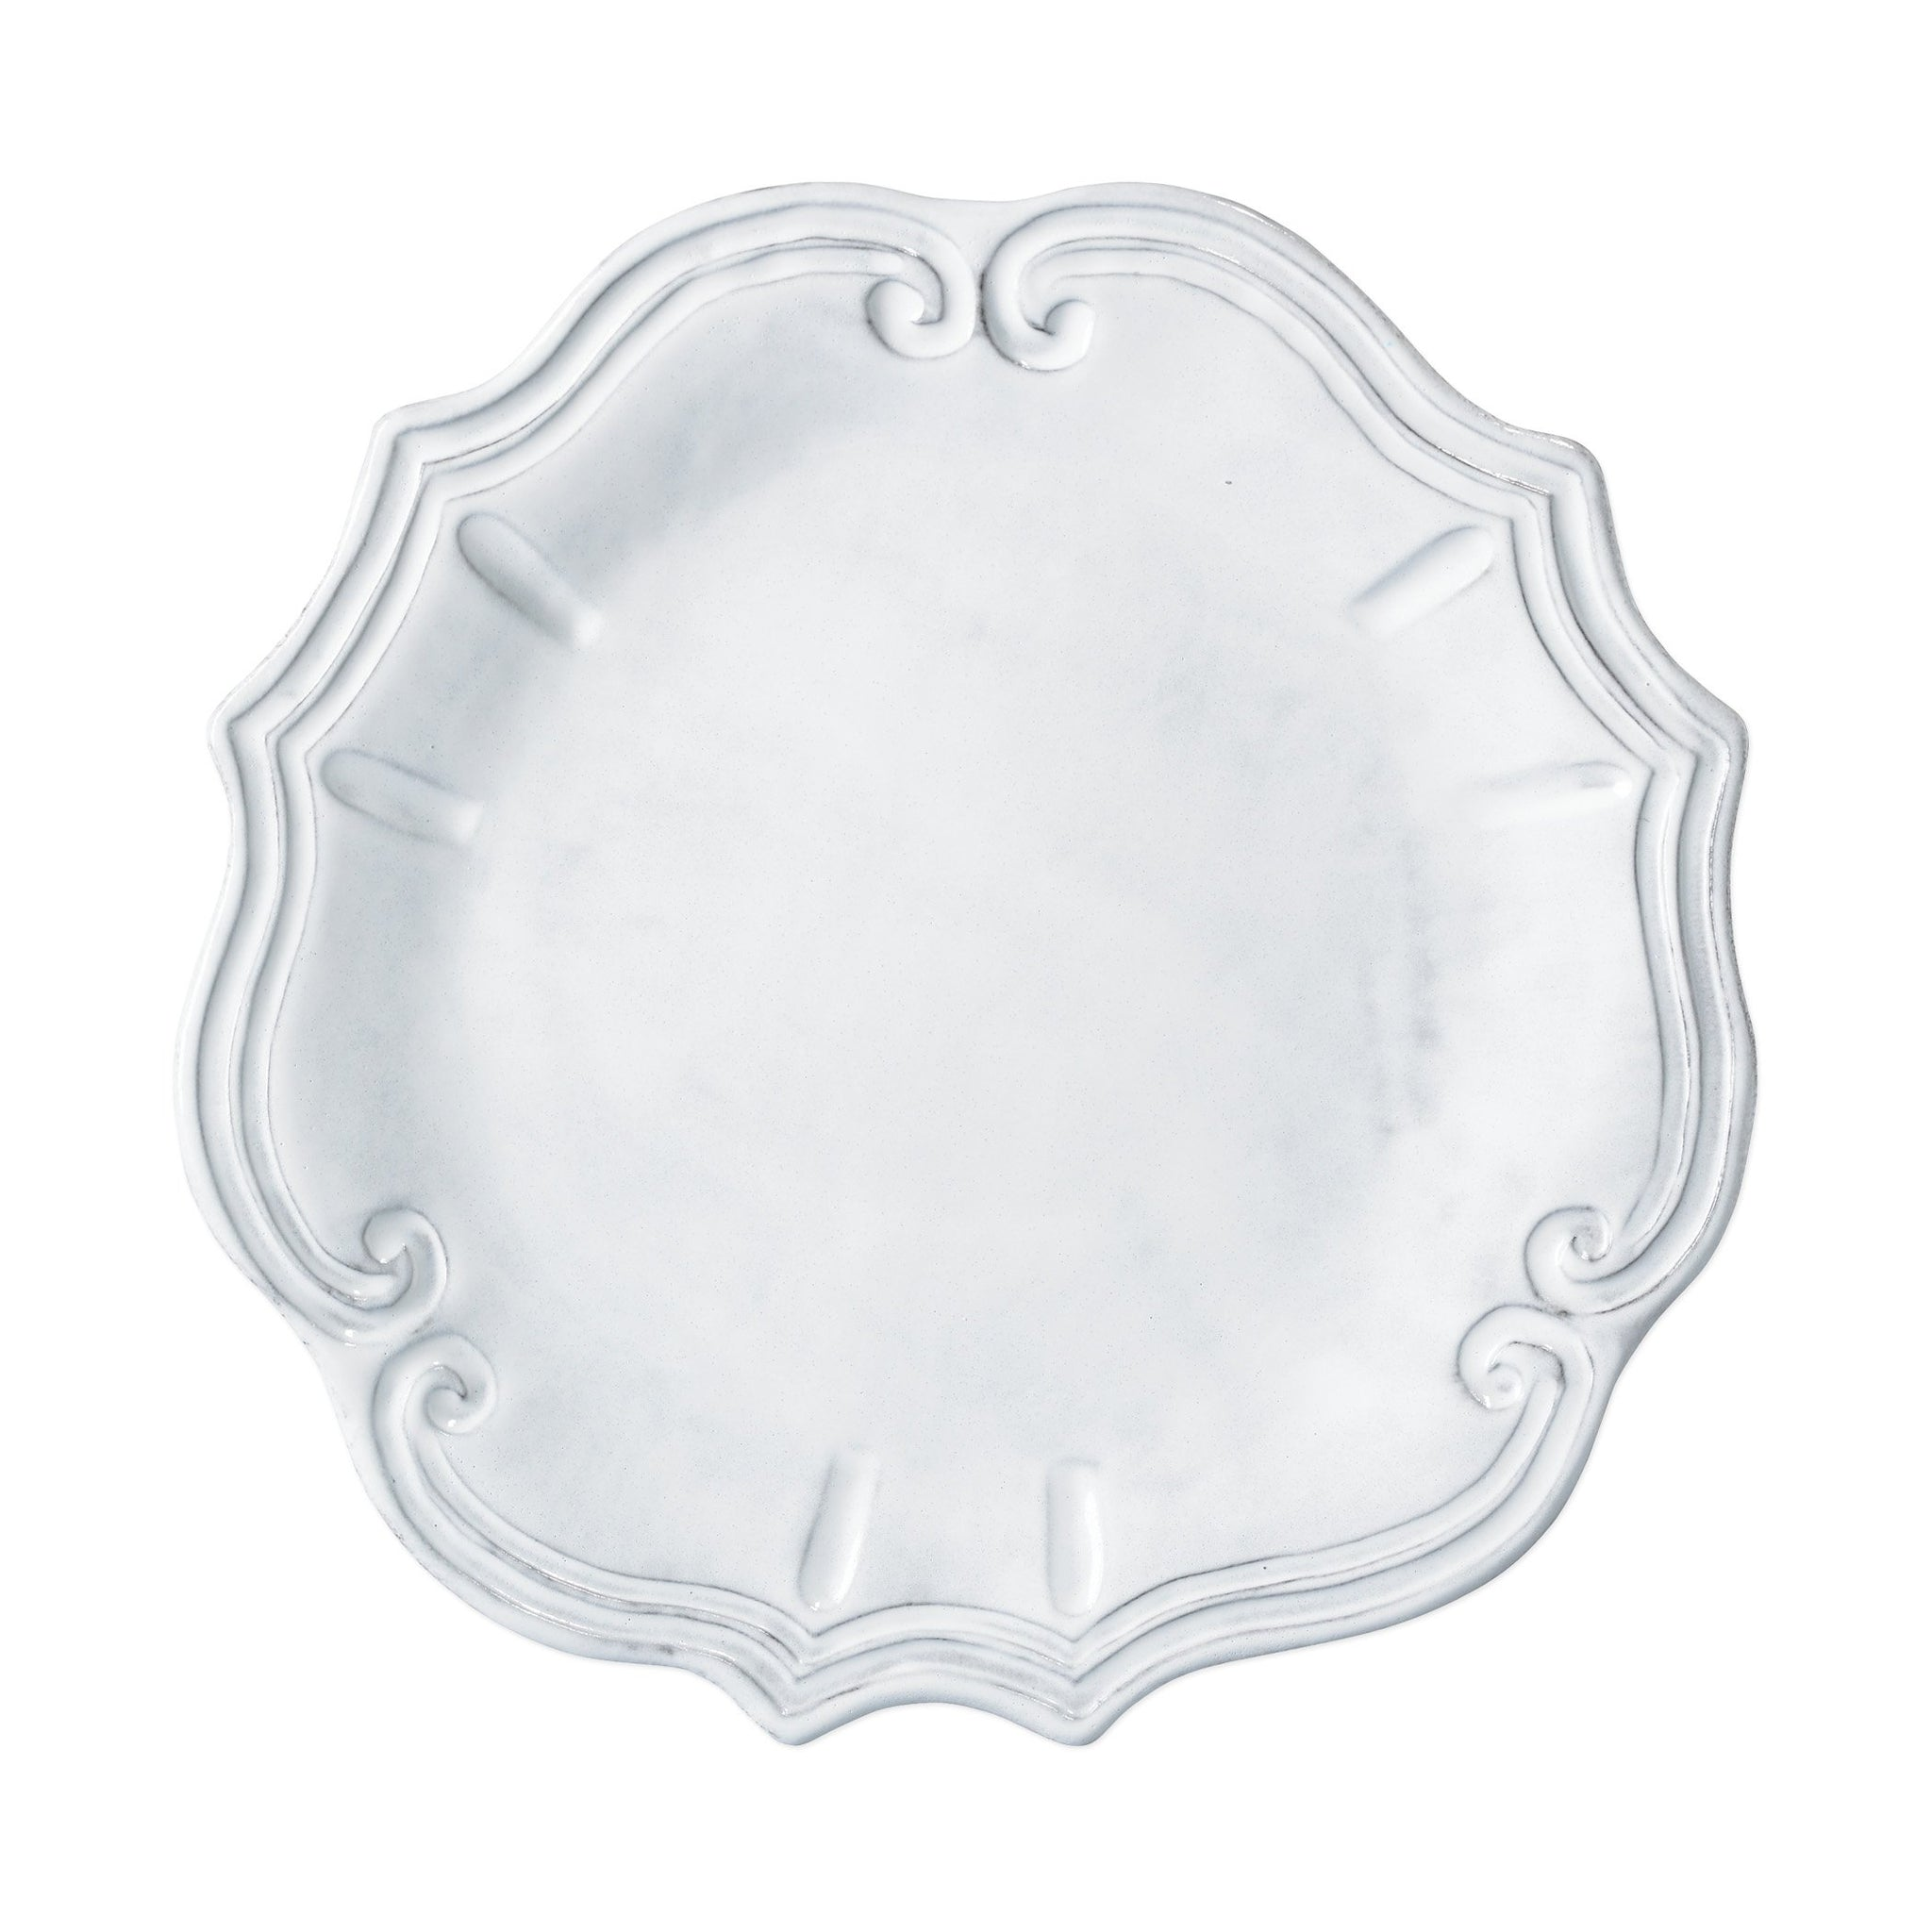 Incanto Baroque American Dinner Plate